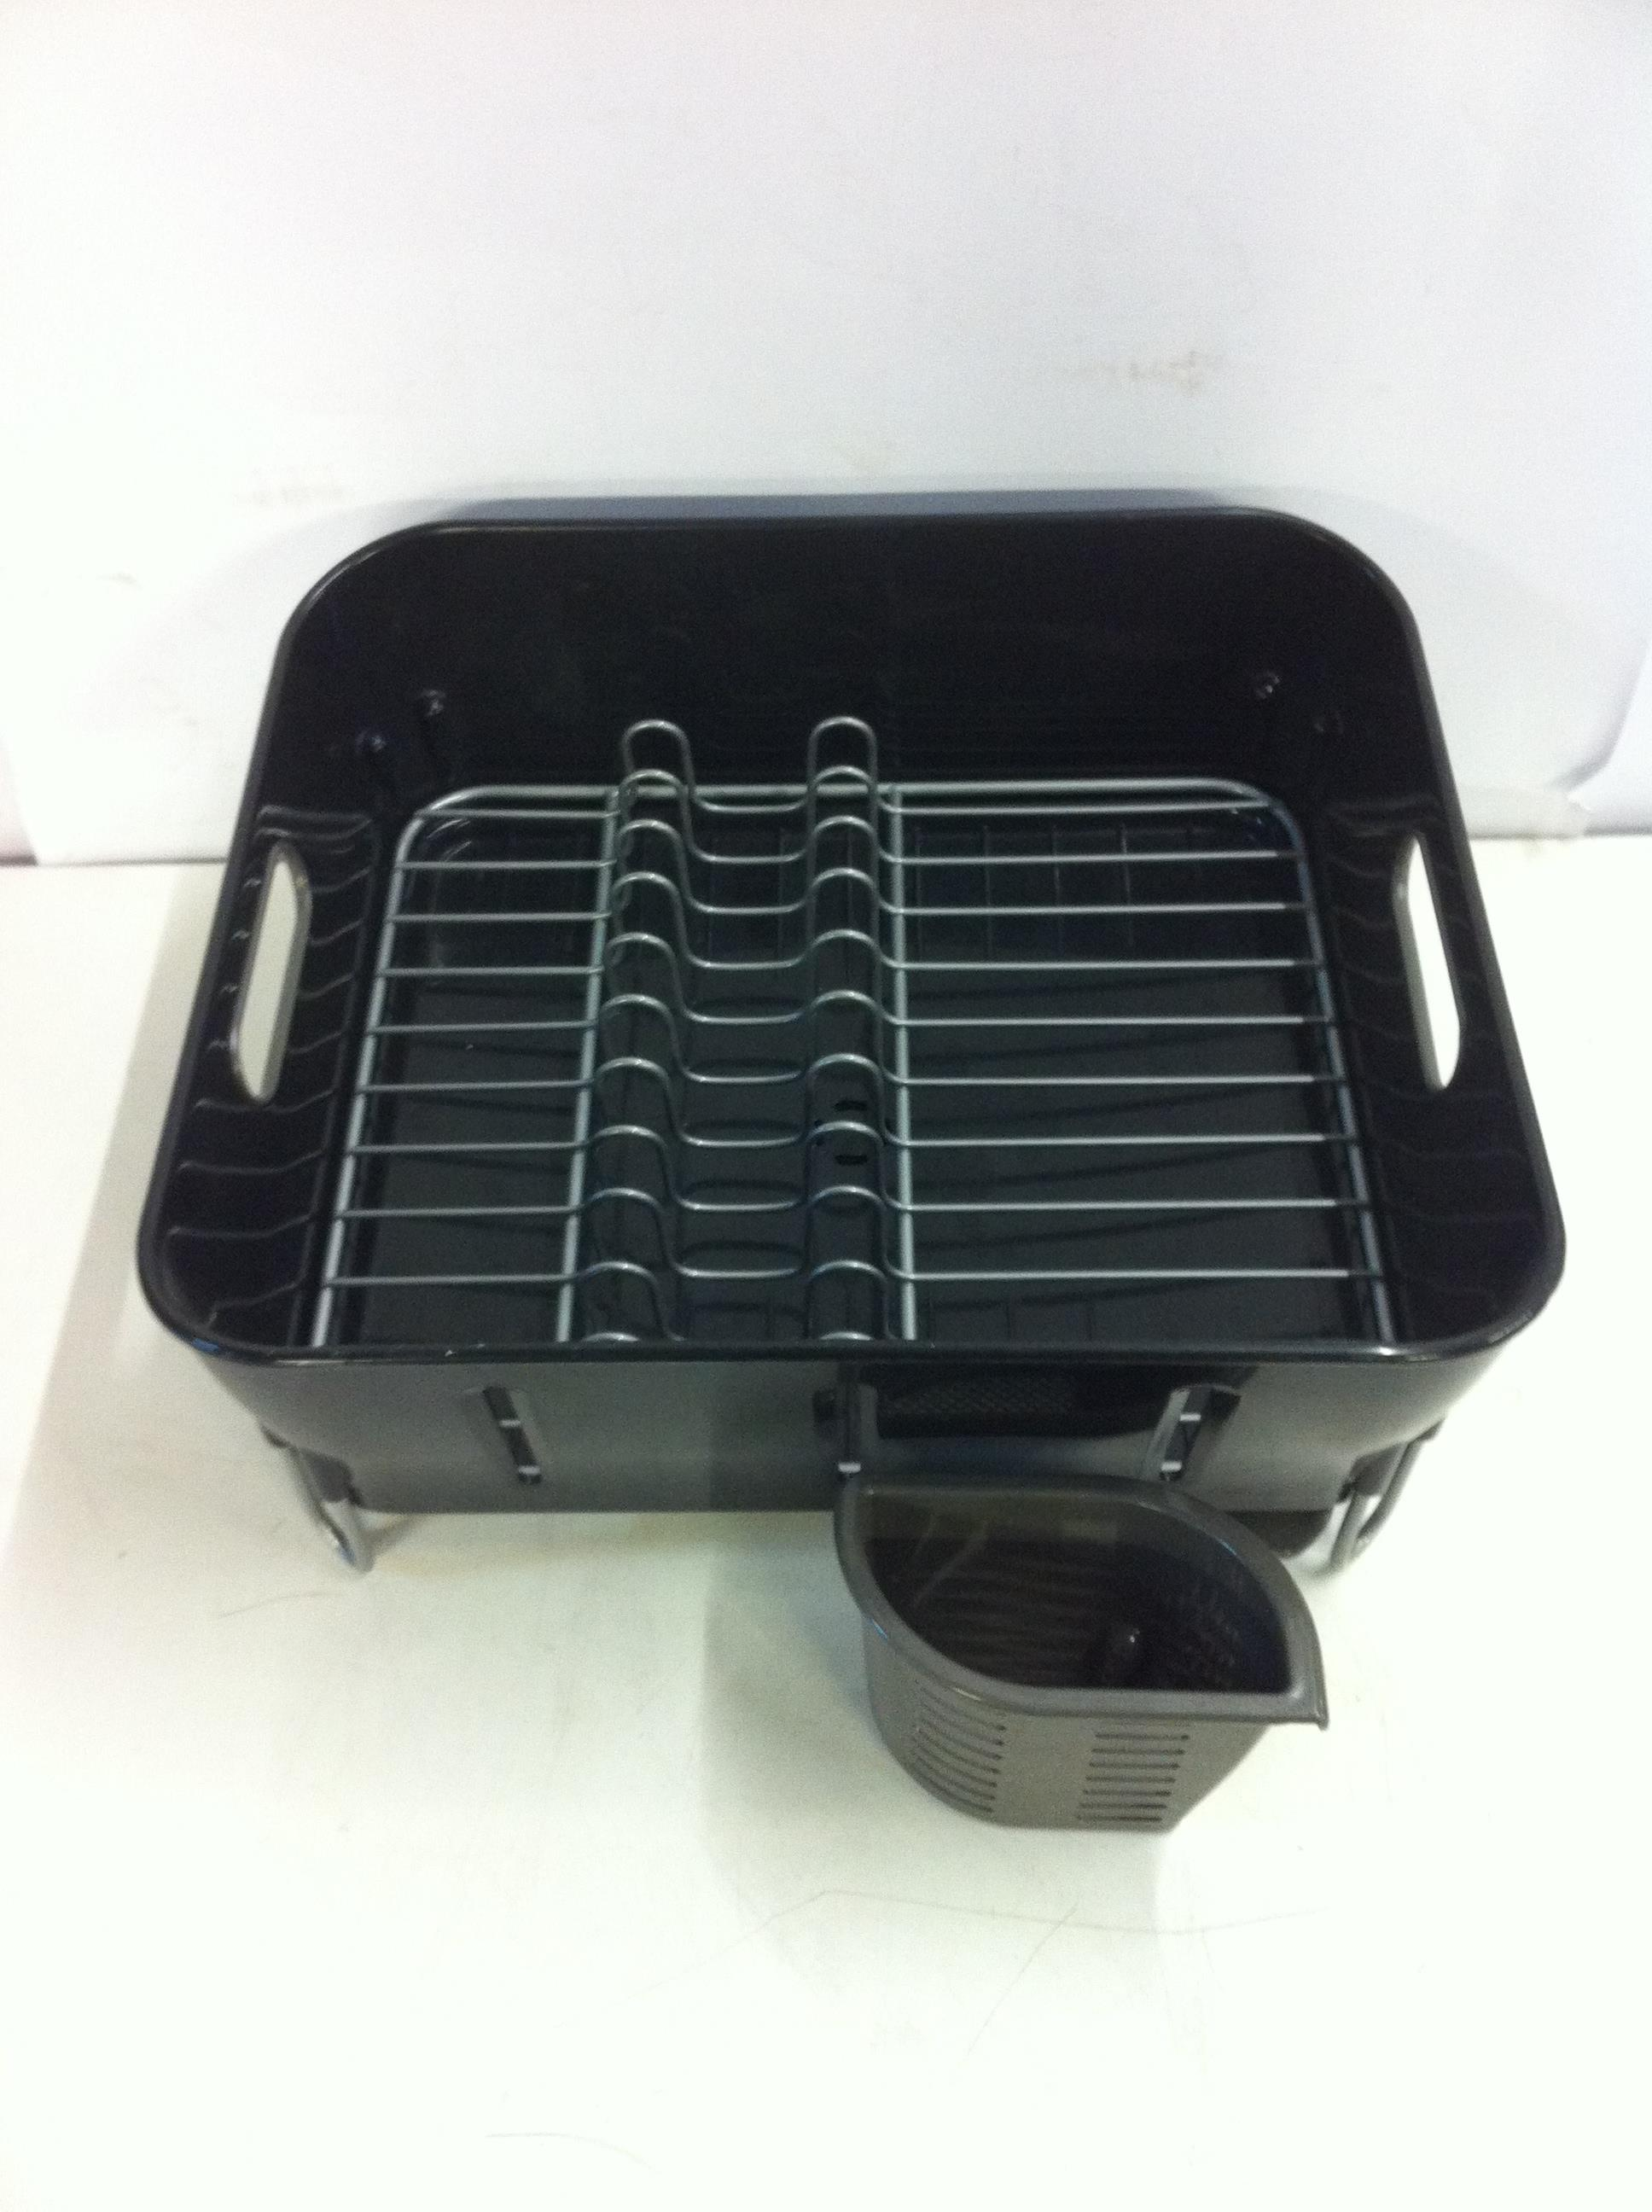 Lot 34 - Quantity of Multi Purpose Mixers, Drinks Containers and a Dish Rack